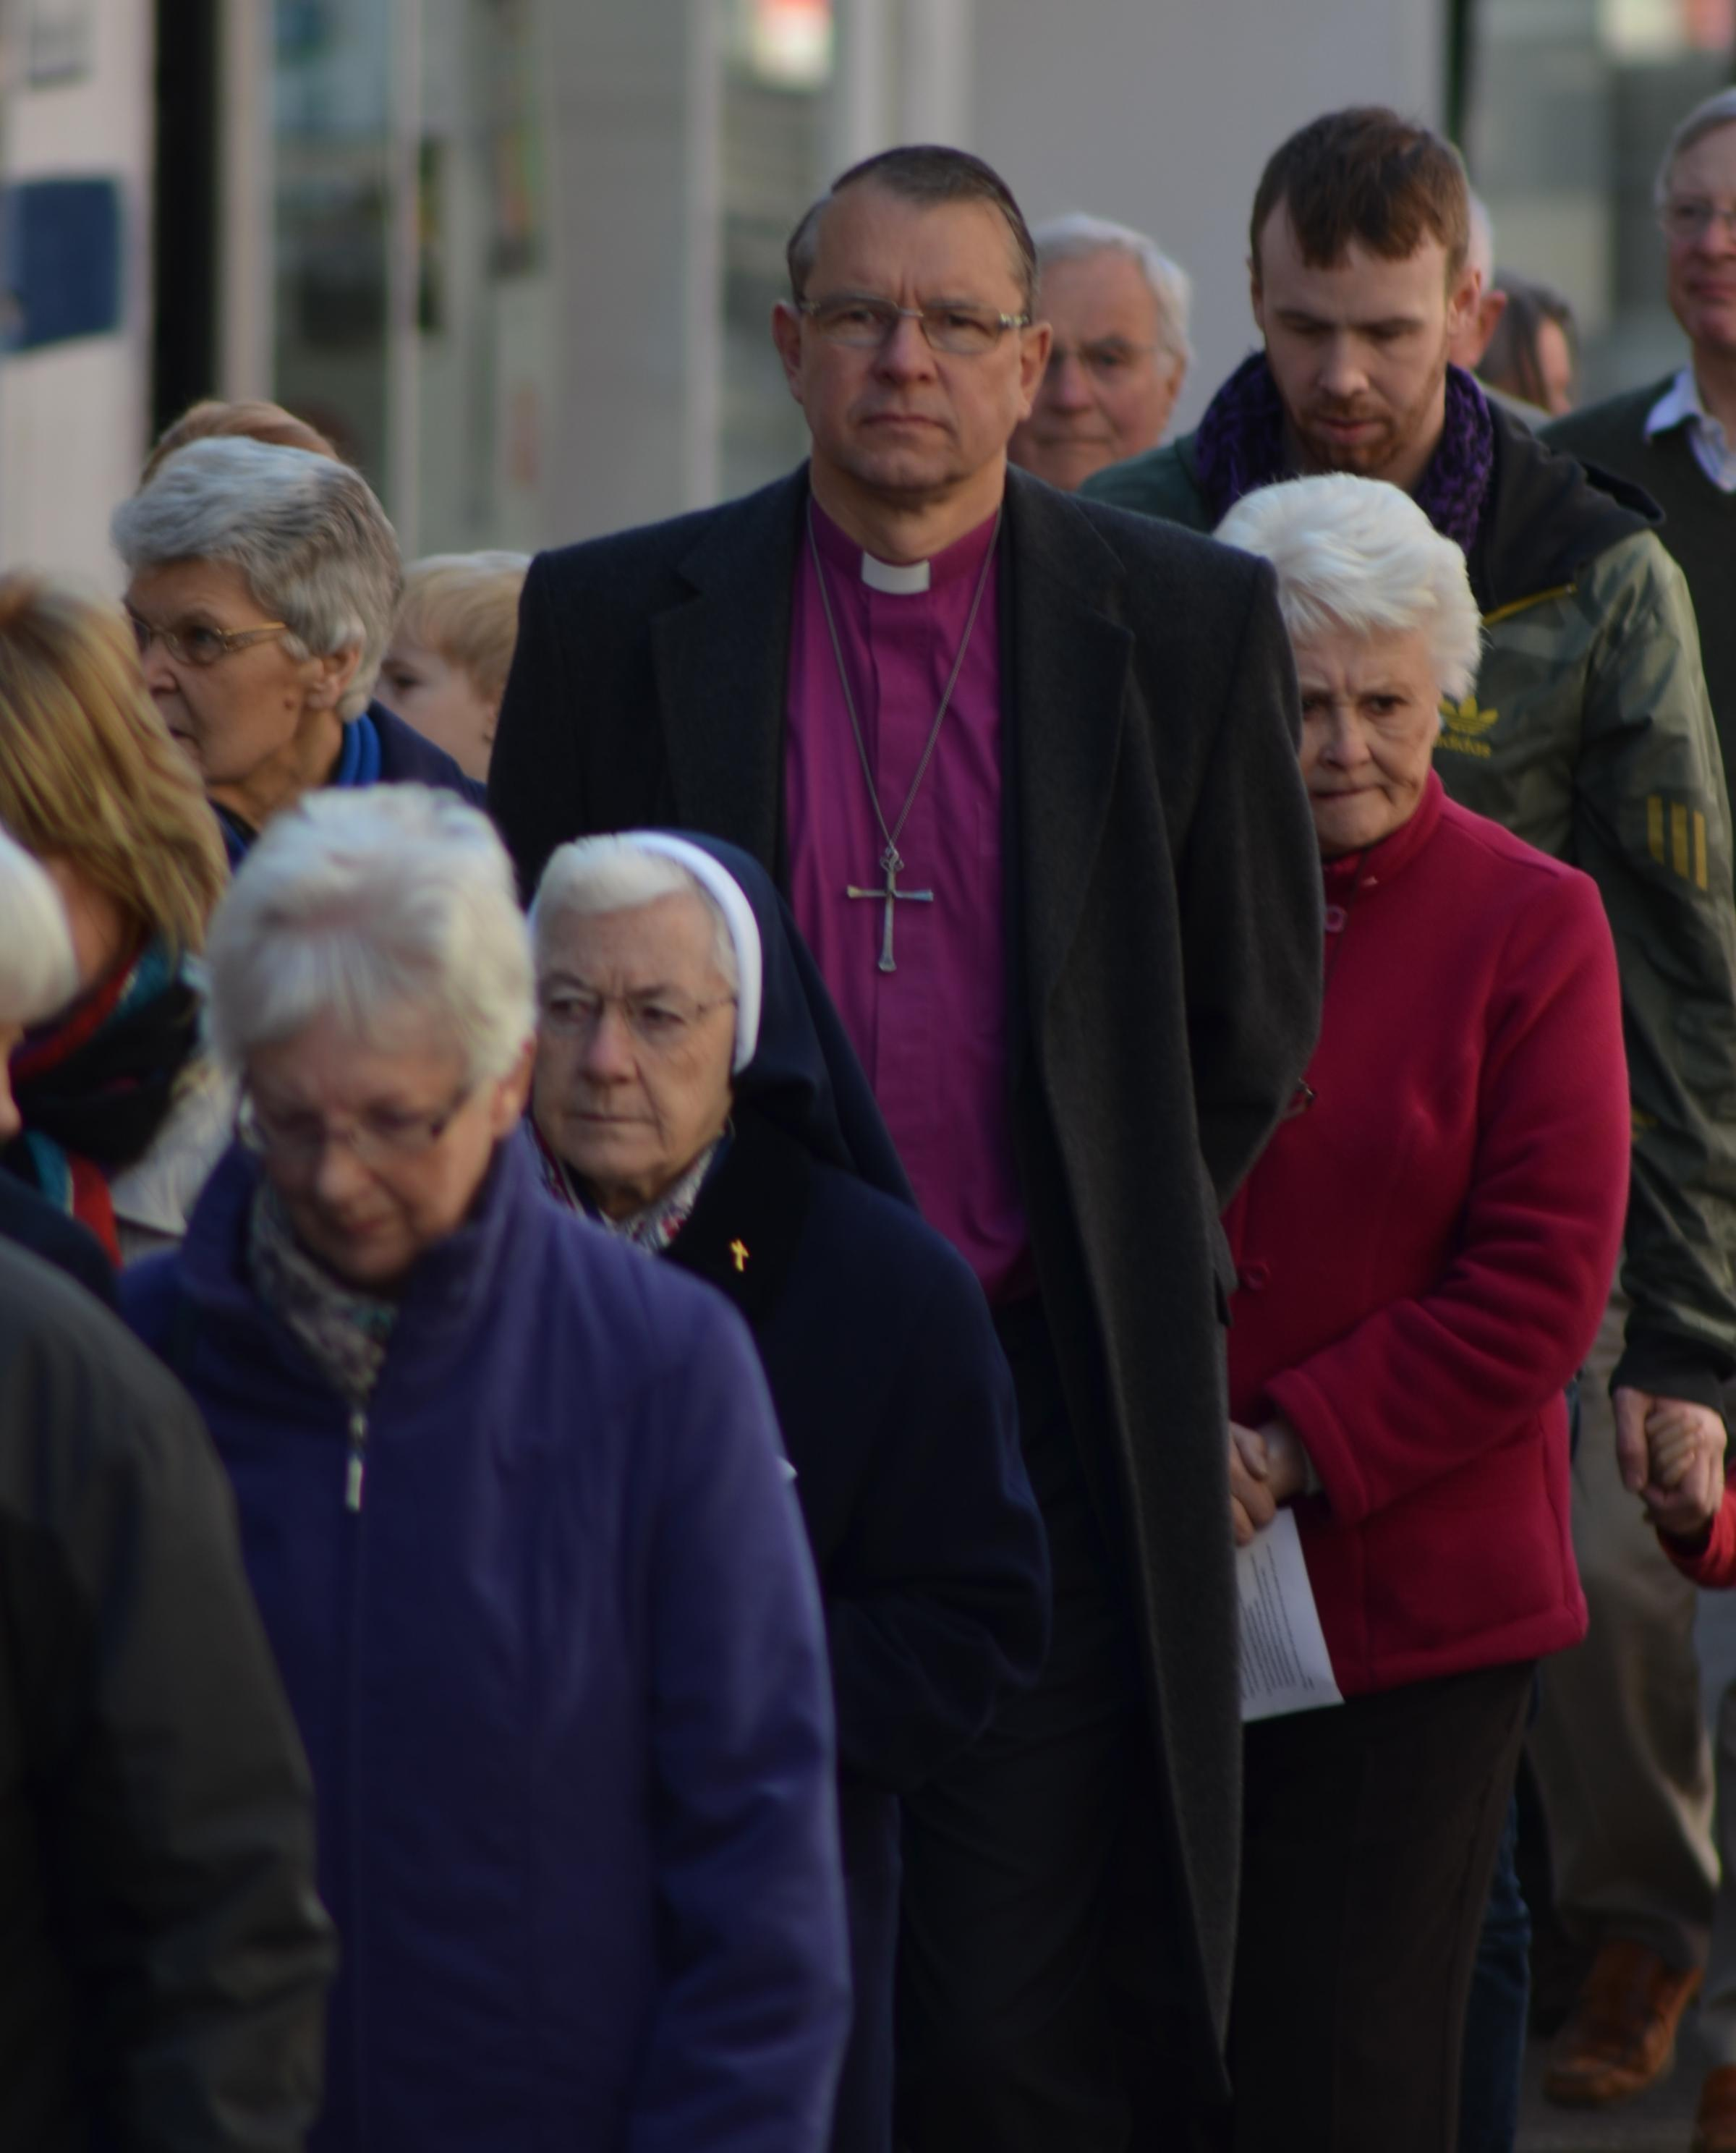 Bishop of Durham takes his place in Good Friday Walk of Witness